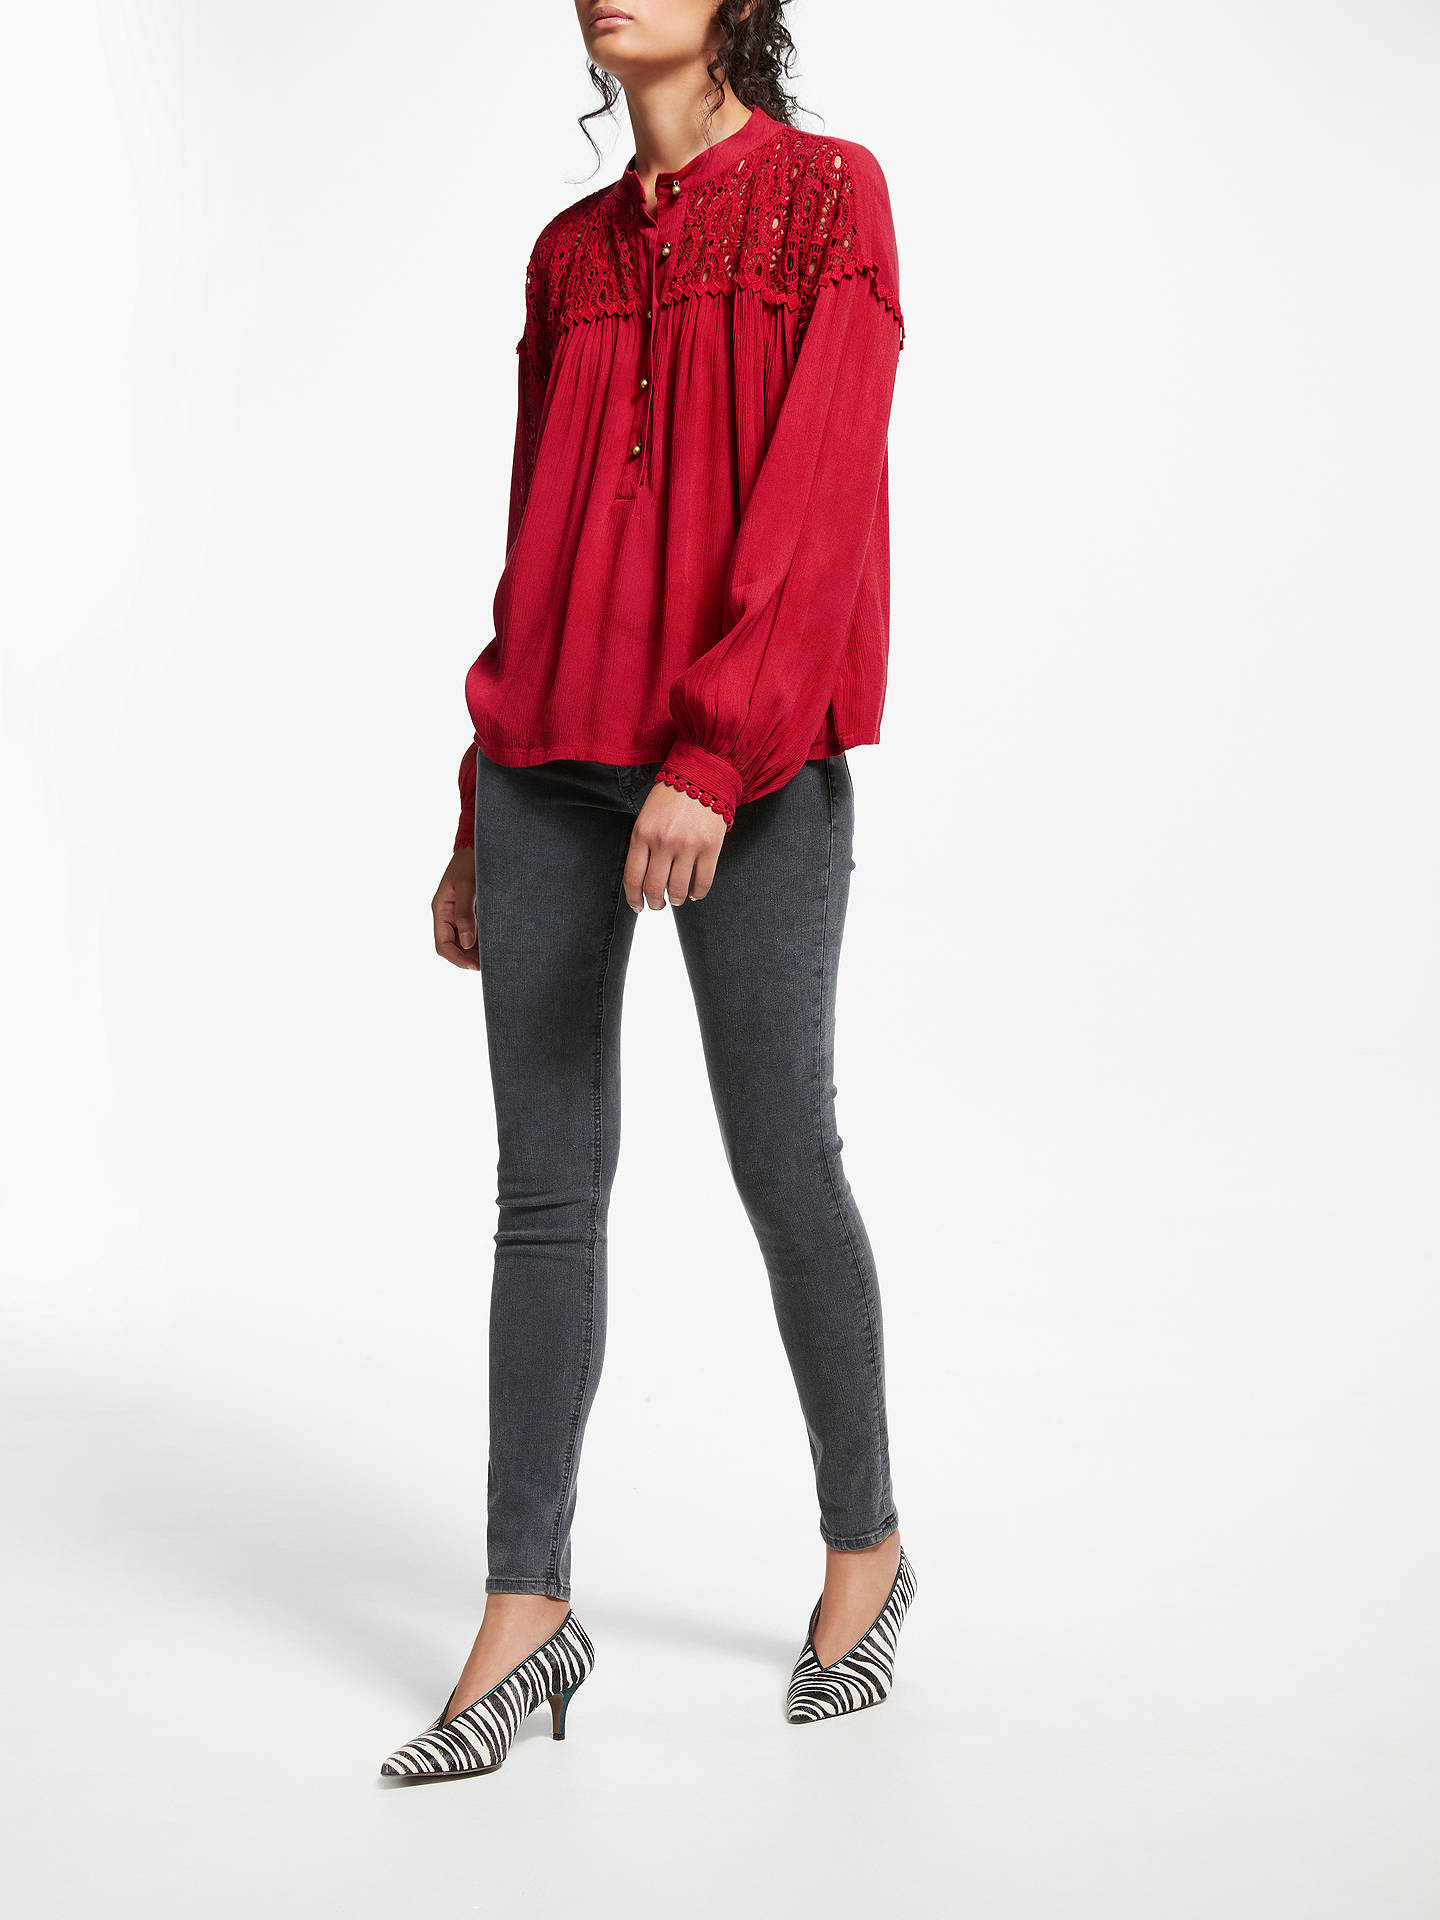 BuyAND/OR Matilda Crochet Panel Top, Red, 8 Online at johnlewis.com